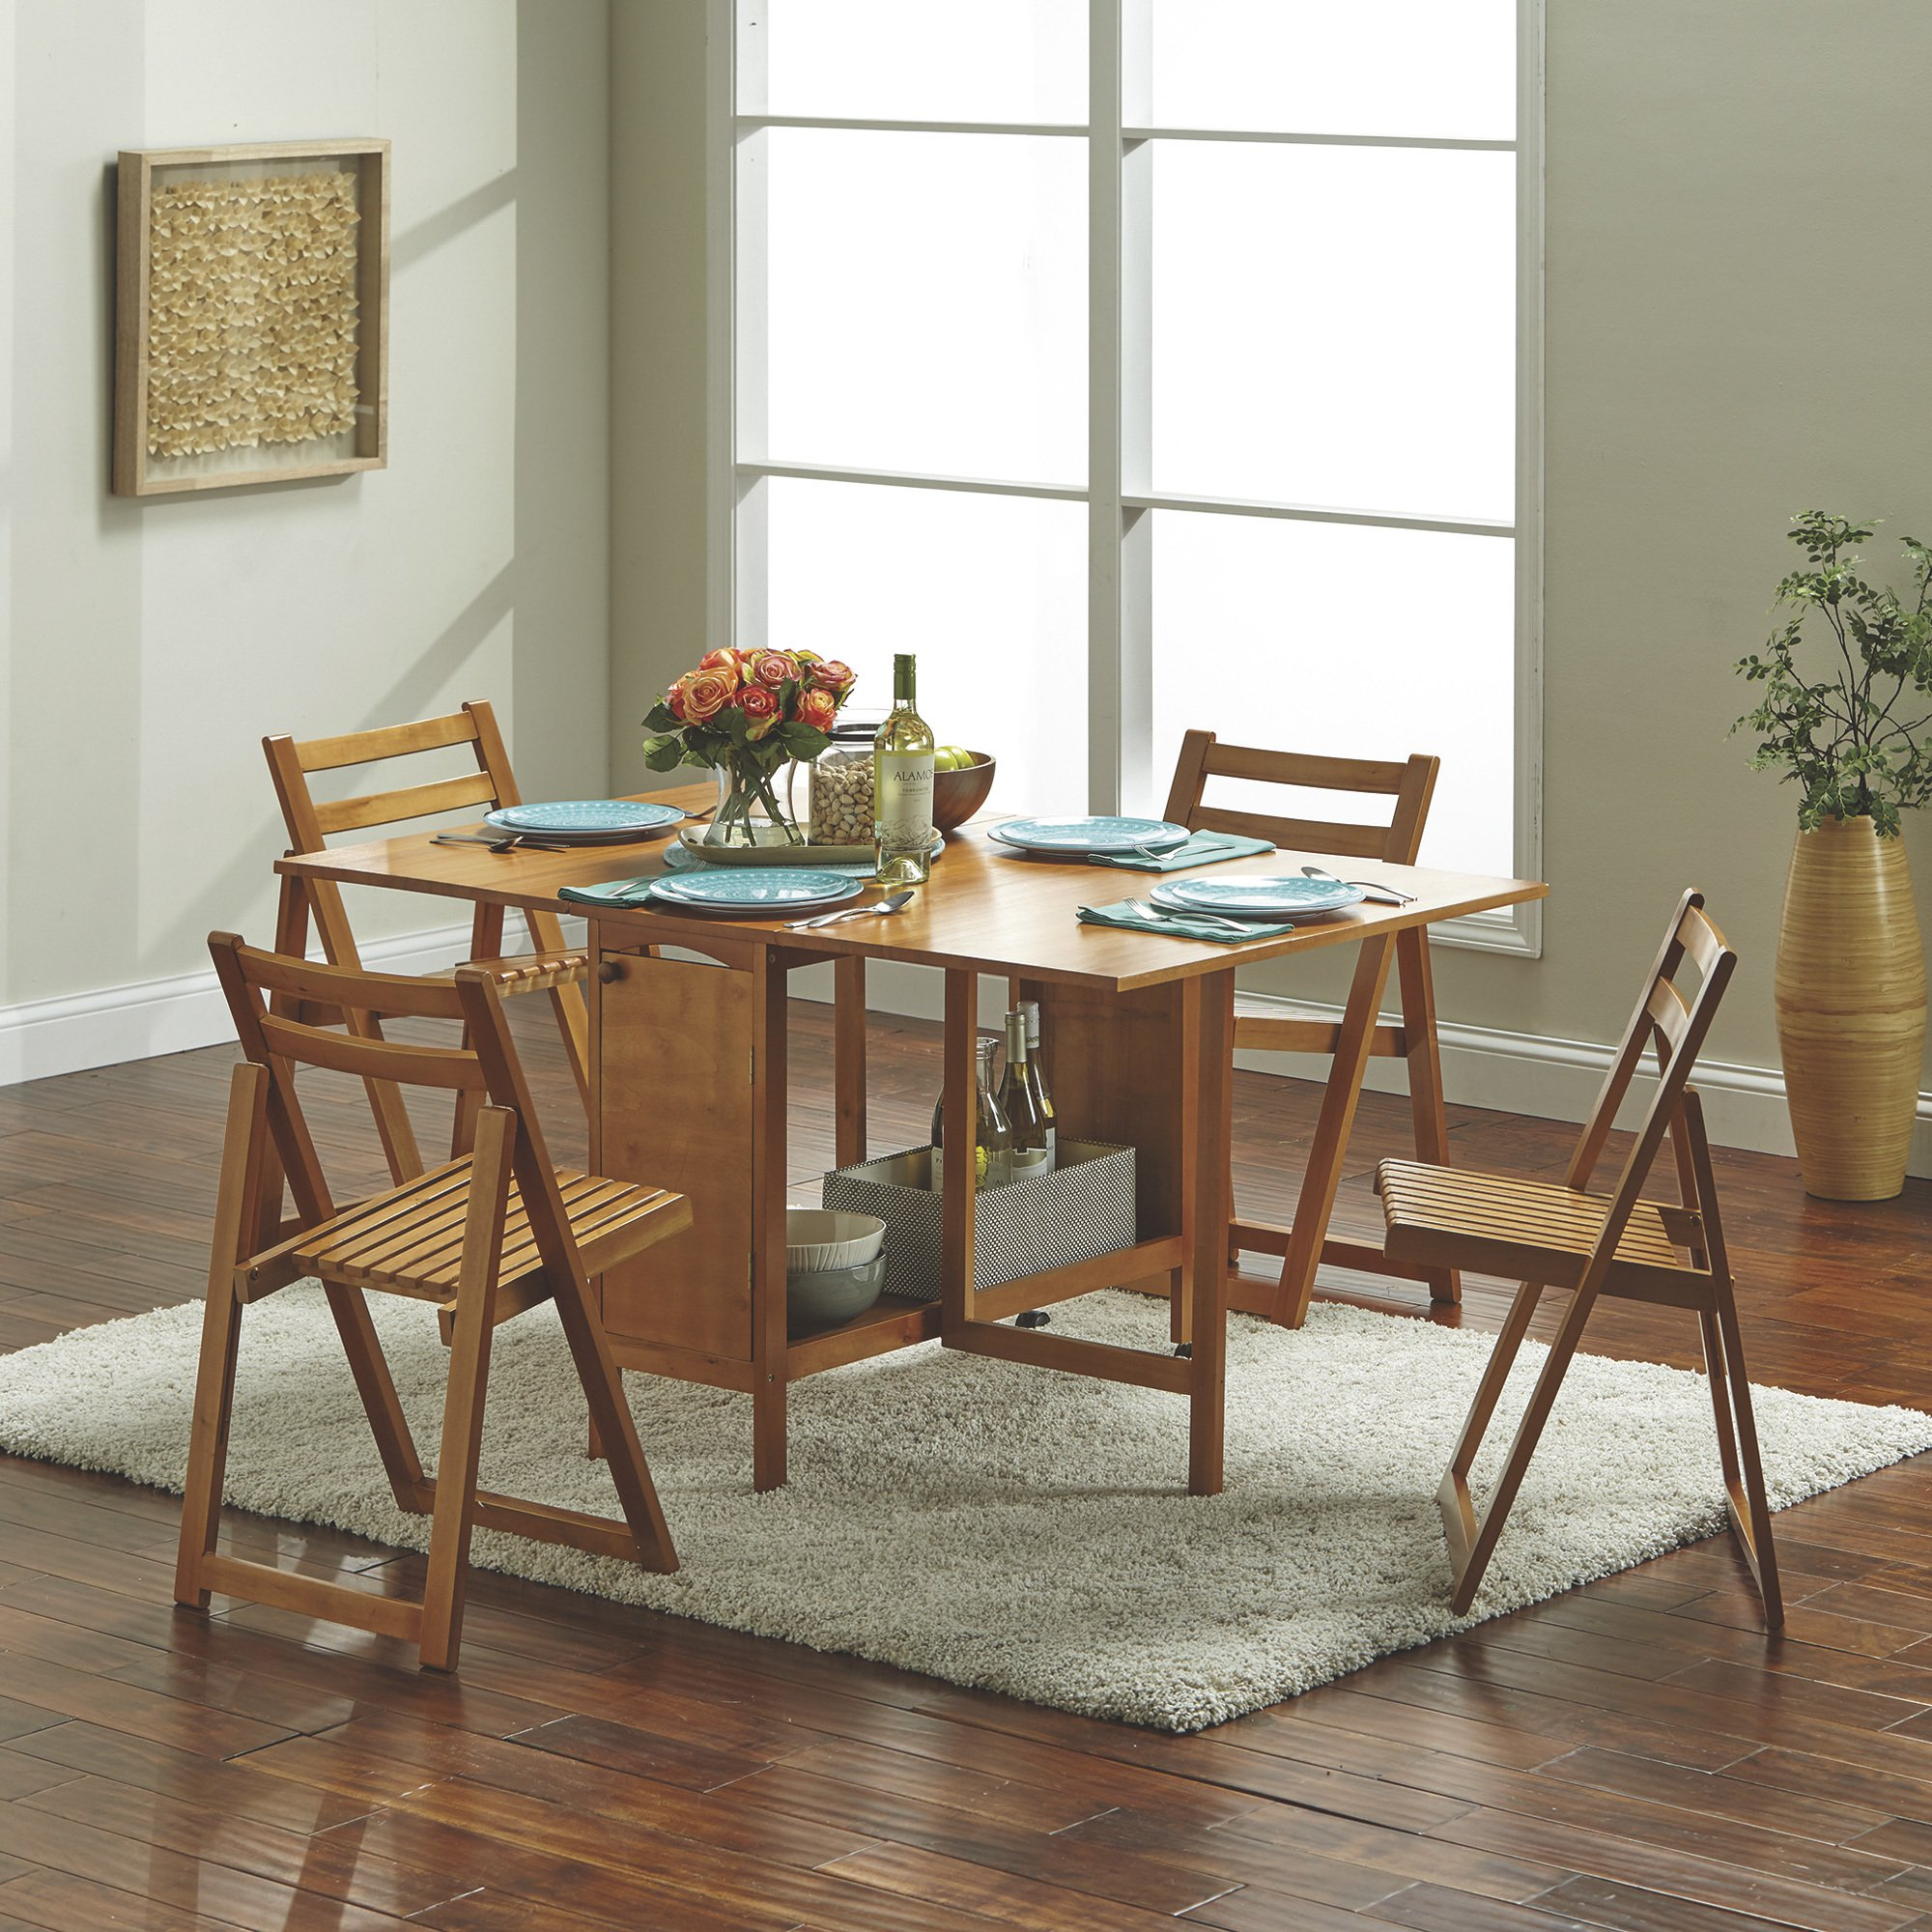 5 Pc Space Saving Foldable Portable Dining Set 1 Table 4 Chairs